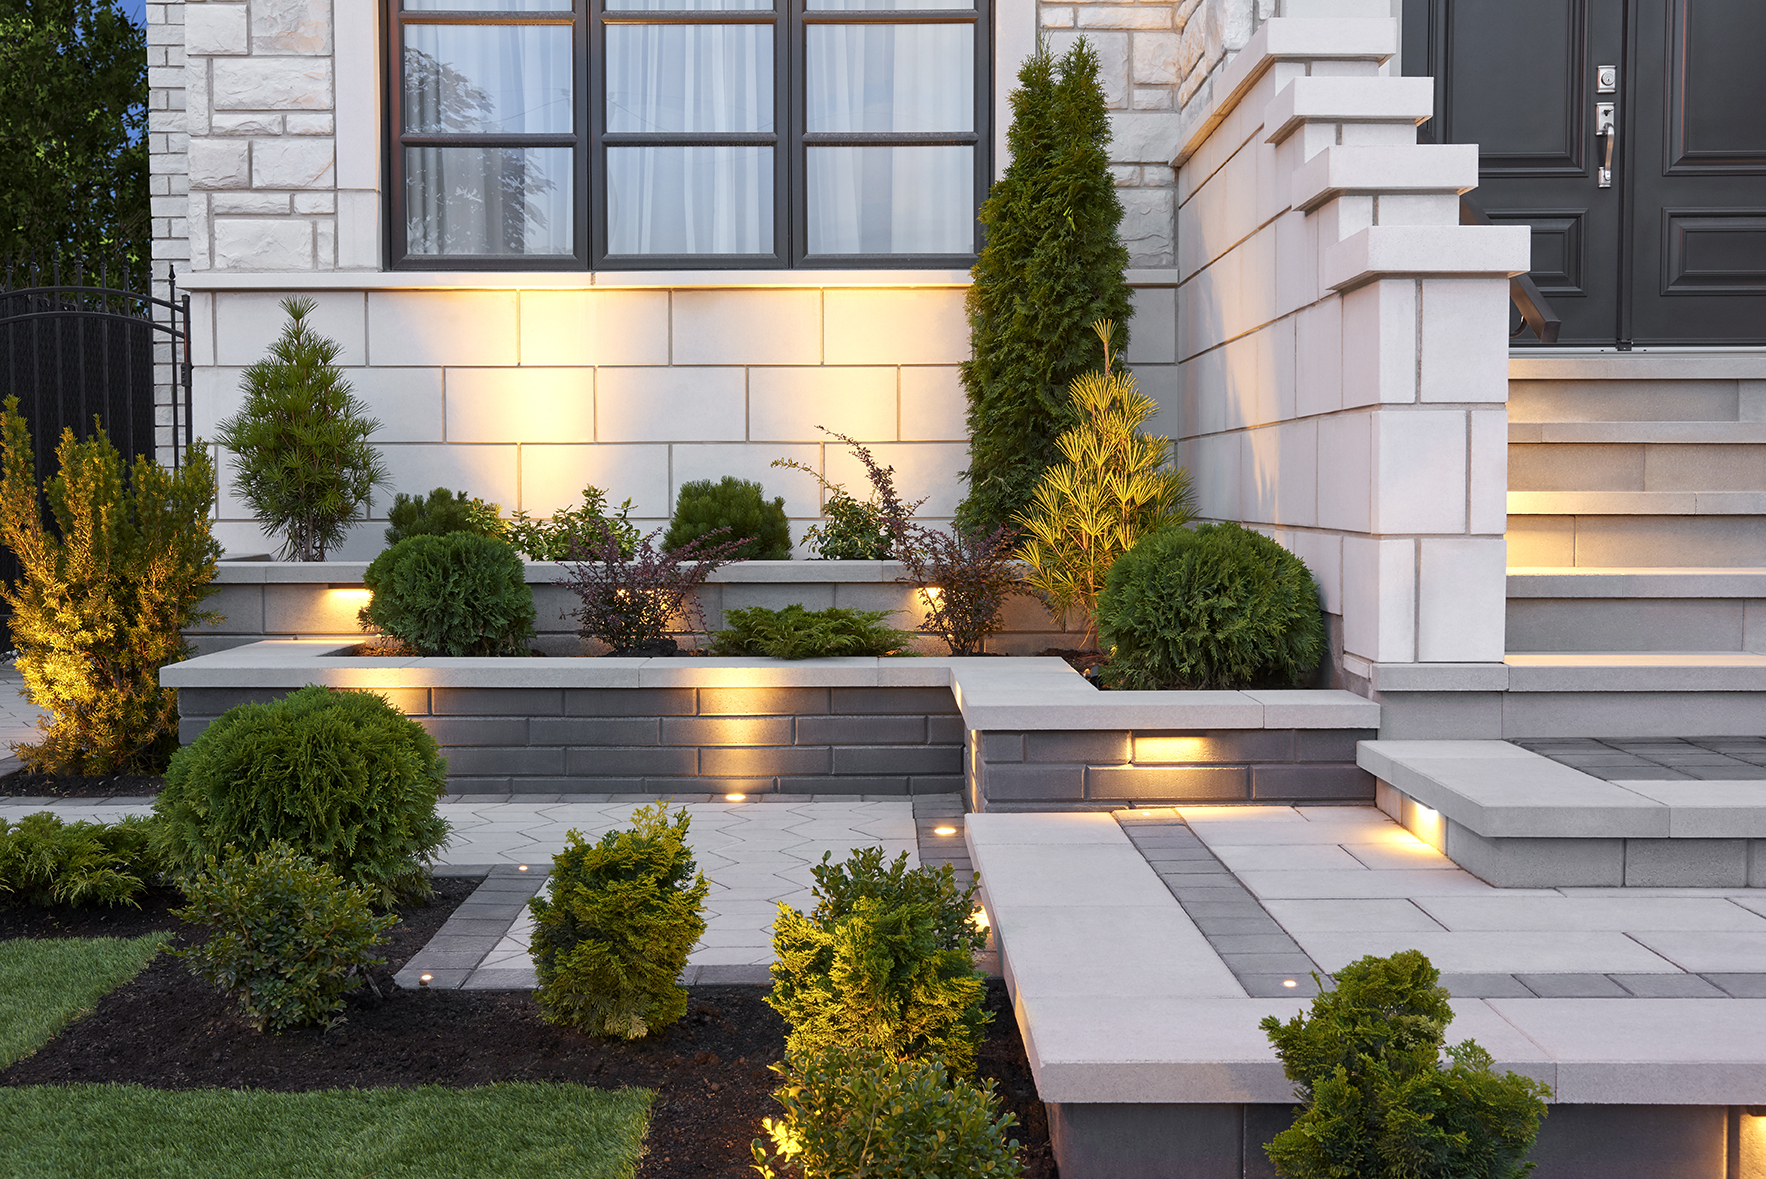 7 retaining wall ideas for your front